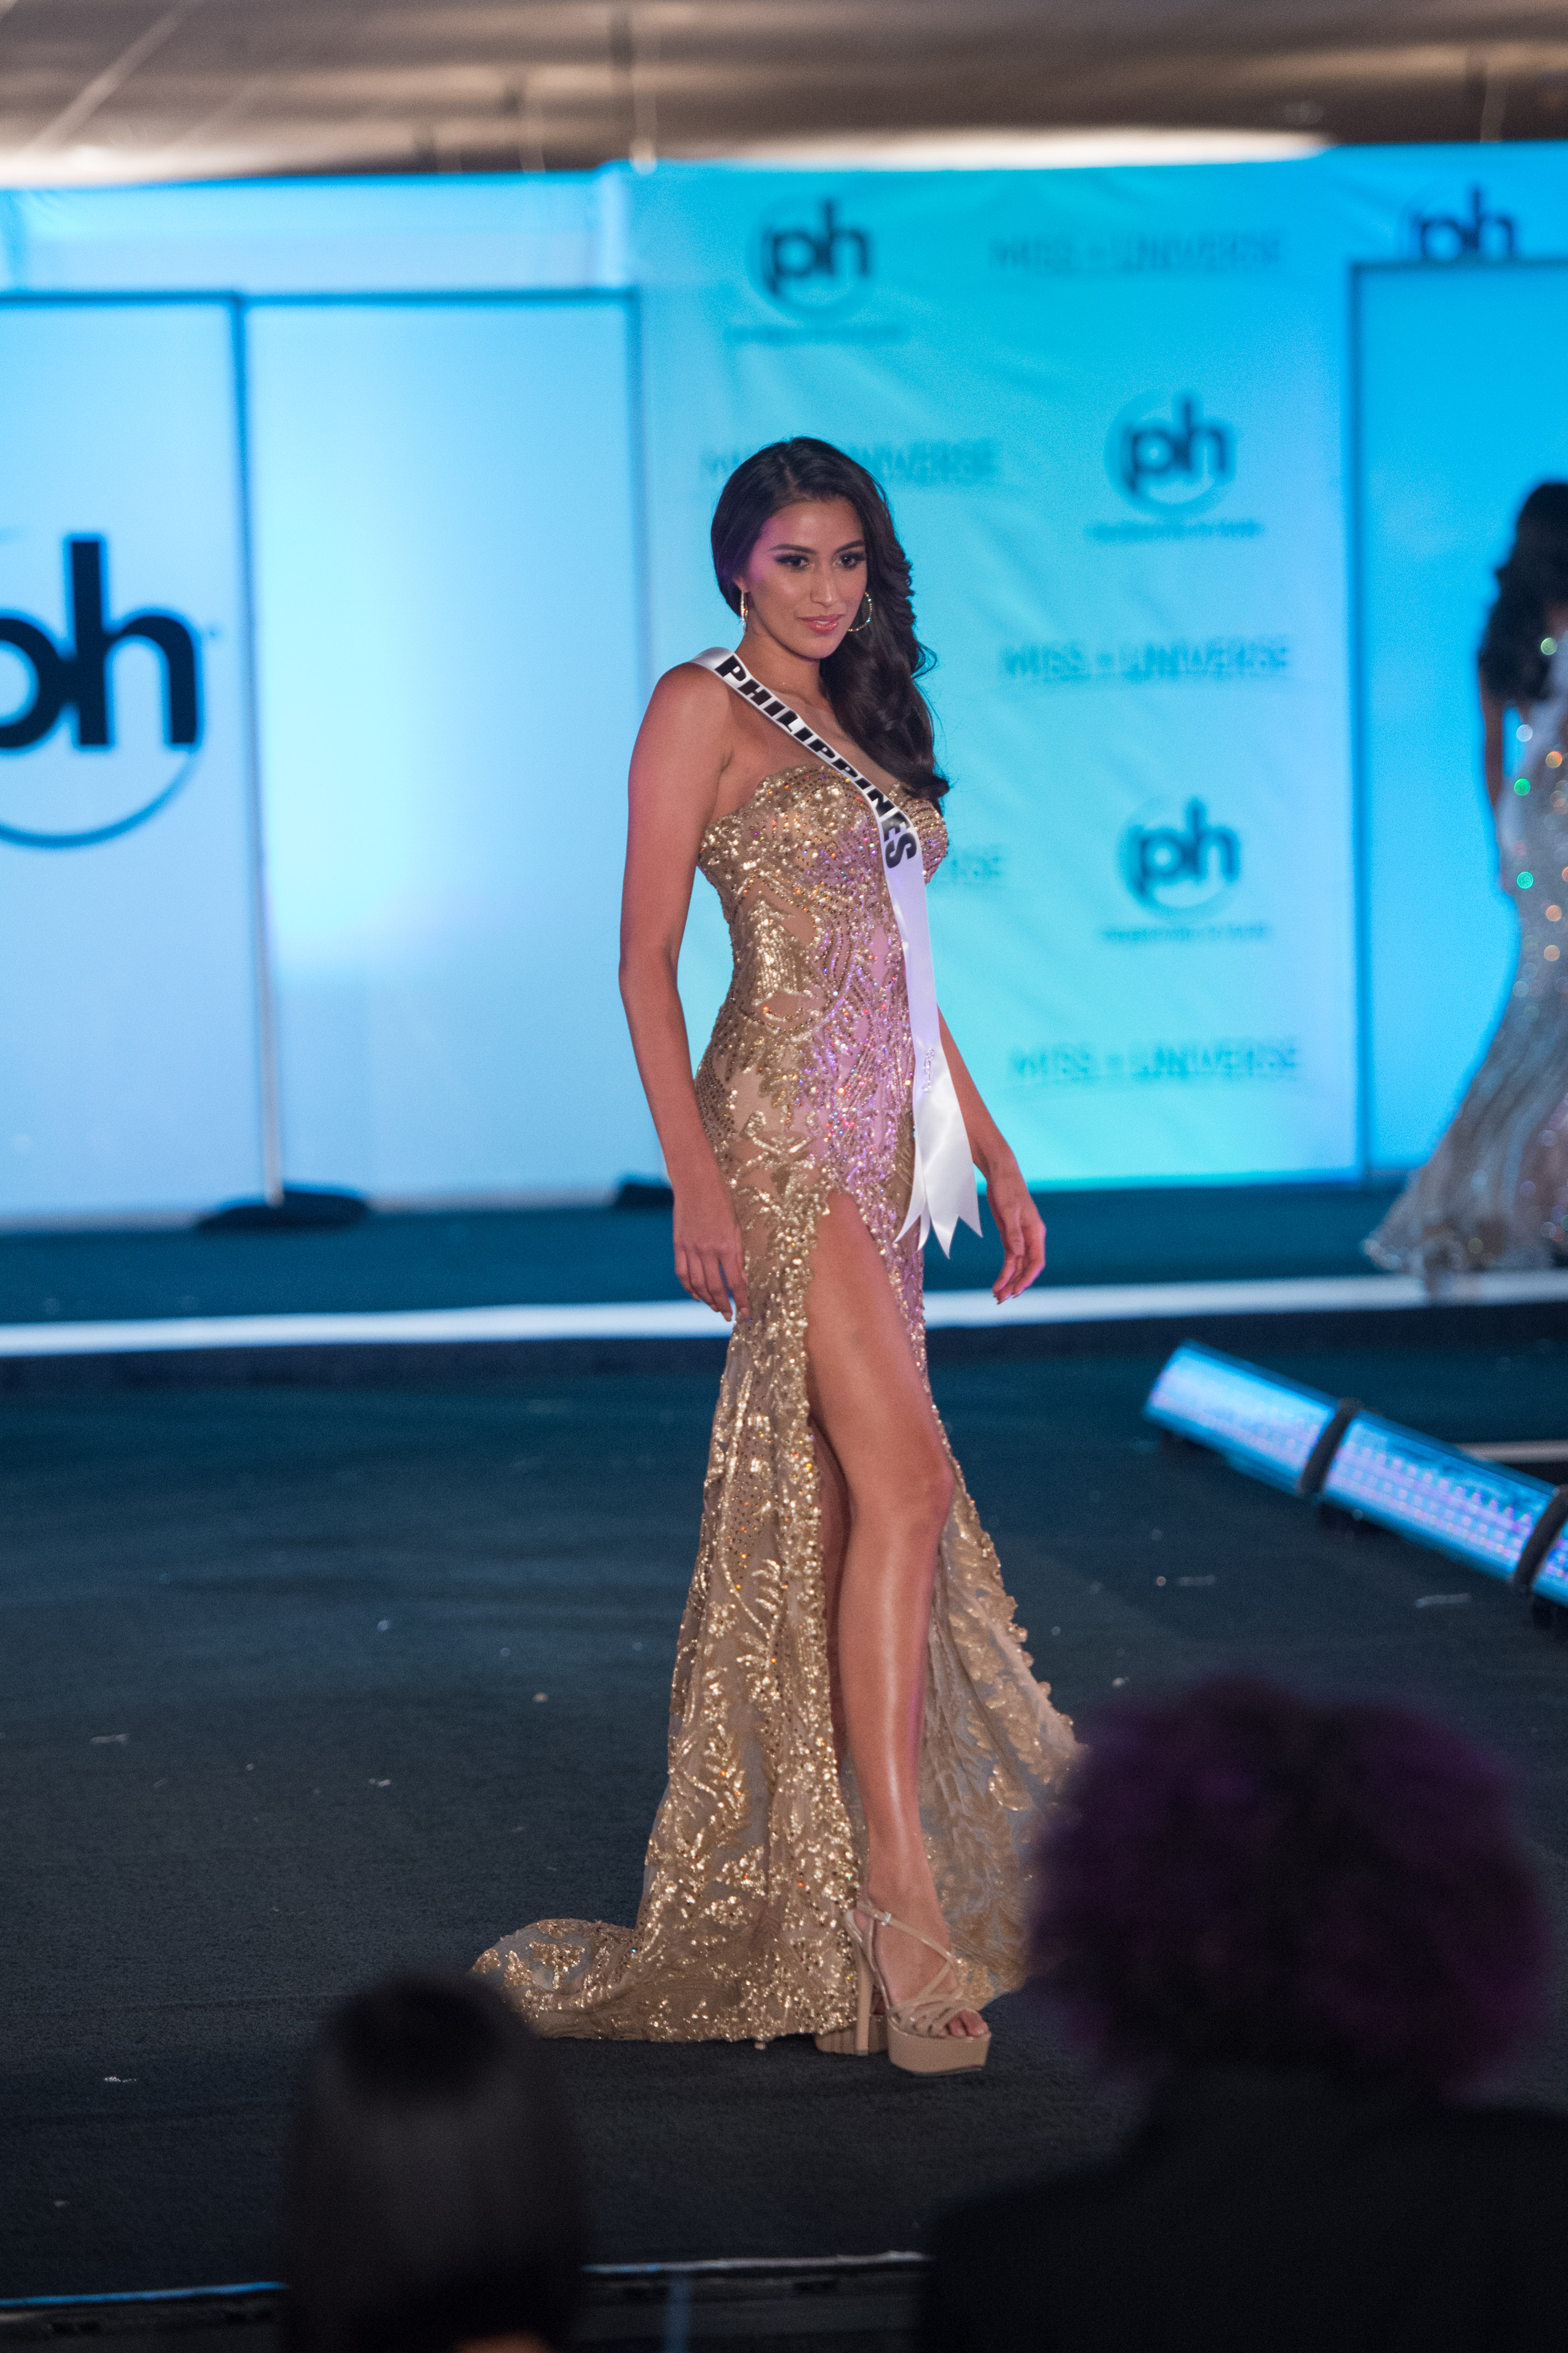 Rachel Peters, Miss Philippines 2017 competes on stage in her evening gown during the MISS UNIVERSE® Preliminary Competition at Planet Hollywood Resort & Casino in Las Vegas on November 20, 2017. The contestants have spent the last week touring, filming, rehearsing and preparing to compete for the Miss Universe crown in Las Vegas, NV. Tune in to the FOX telecast at 7:00 PM ET live/PT tape-delayed on Sunday, November 26, live from the AXIS at Planet Hollywood Resort & Casino in Las Vegas to see who will become the next Miss Universe. HO/The Miss Universe Organization